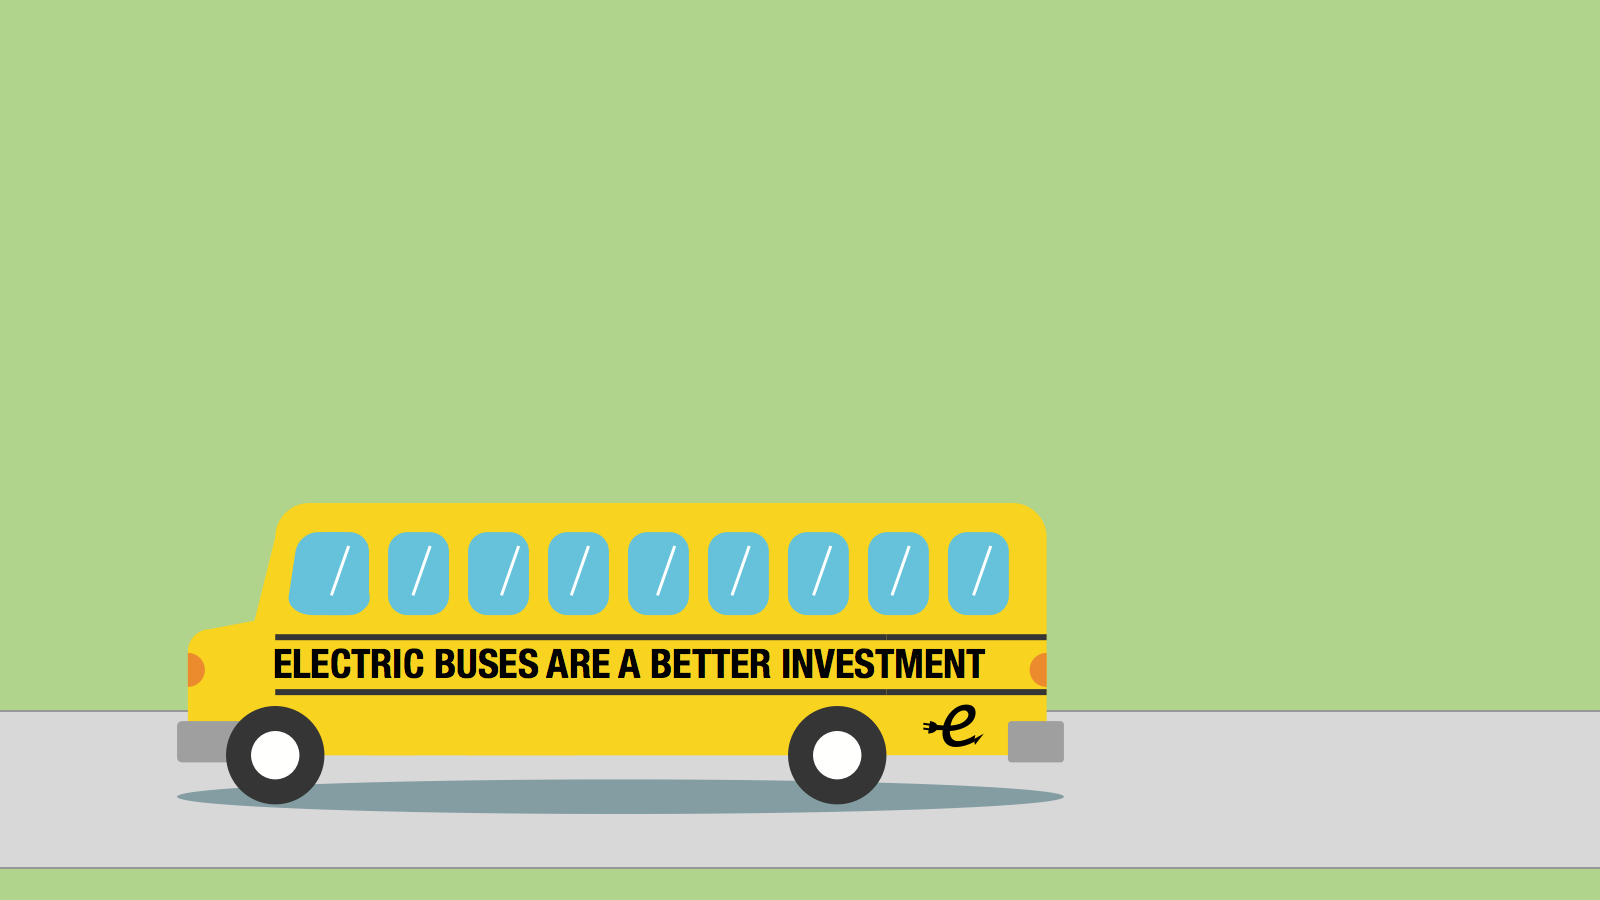 <h3>BENEFITS OF ELECTRIC BUSES</h3><p>Compared to a diesel bus, an electric school bus equipped with vehicle-to-grid capabilities could save more than $31,000 over a bus's 16-year lifetime.</p>